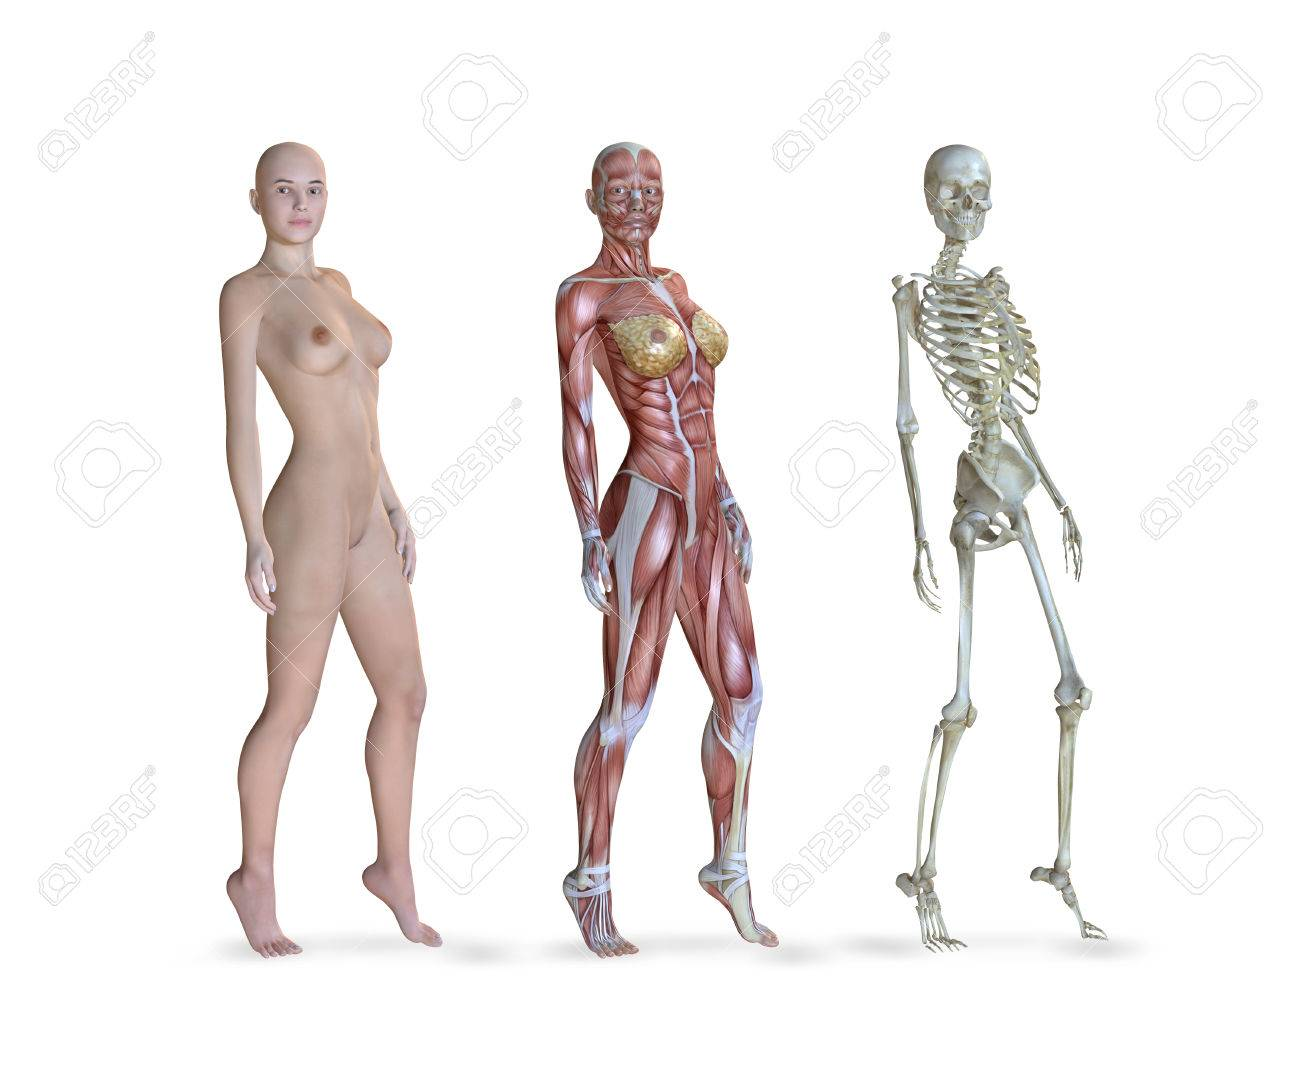 3d Illustration Of The Female Anatomy In Three Different Views